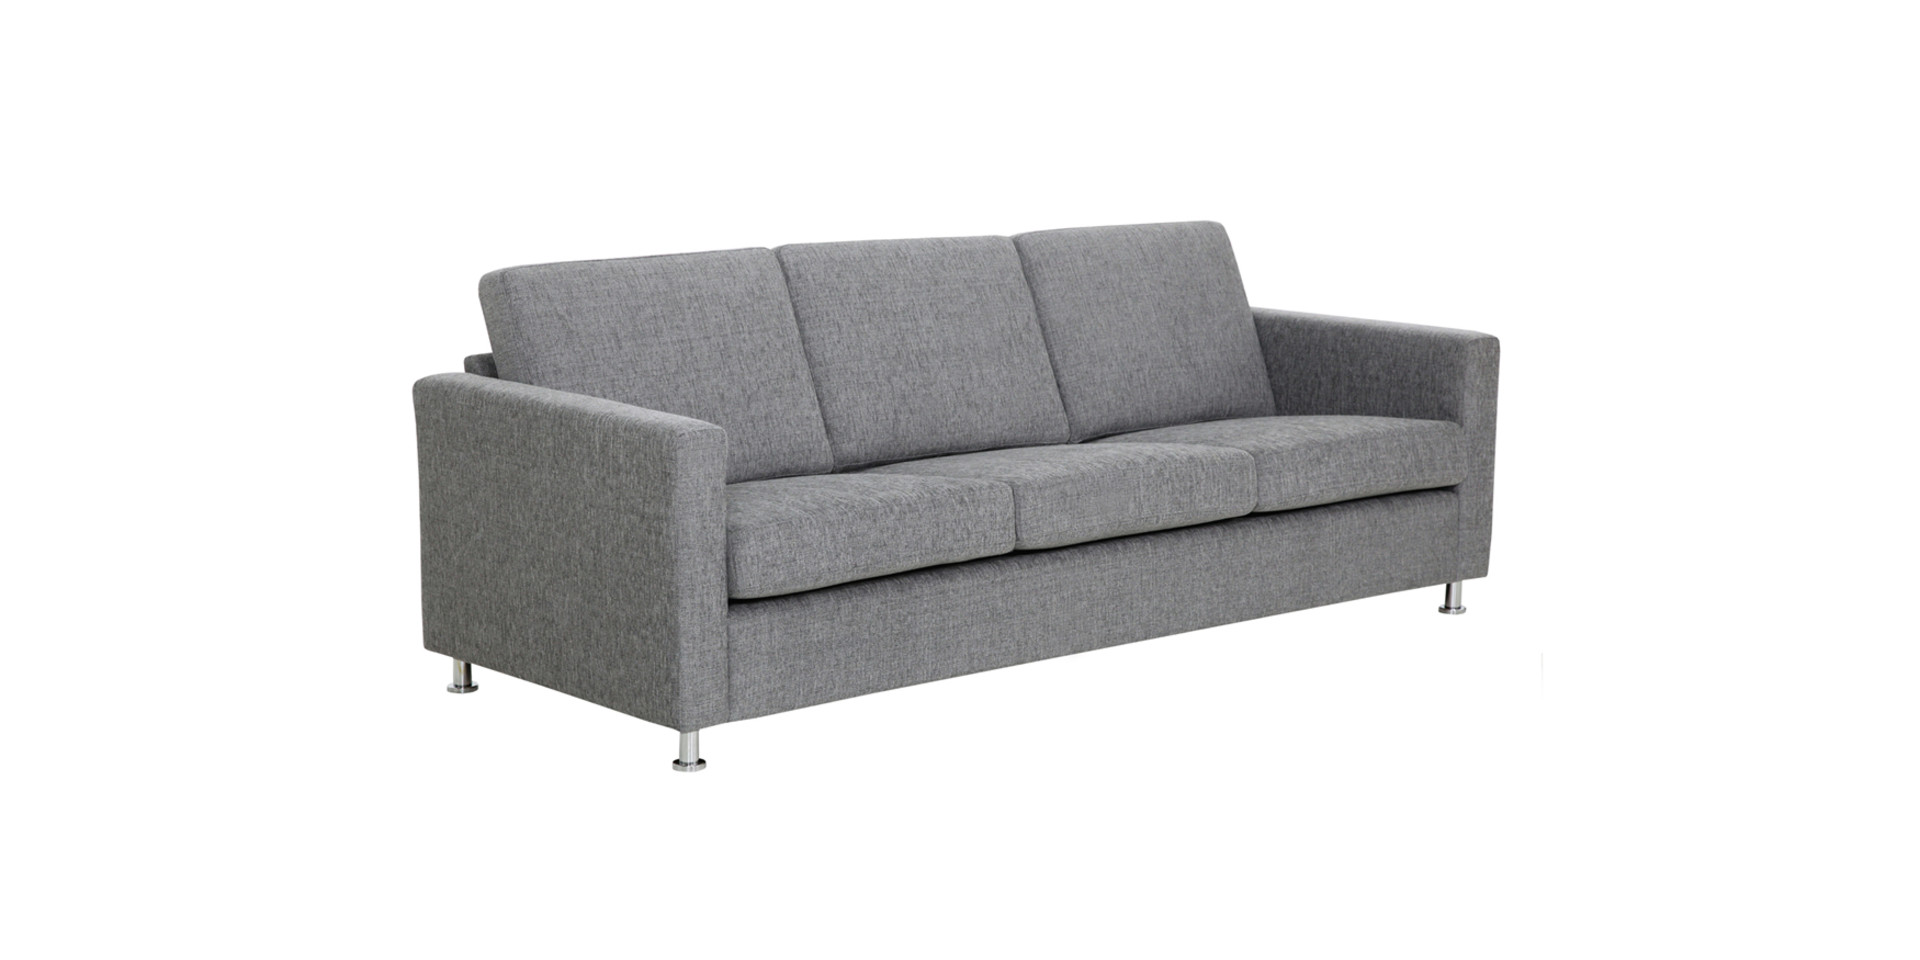 sits-palma-canape-3seater_veraam1c9grey-_2